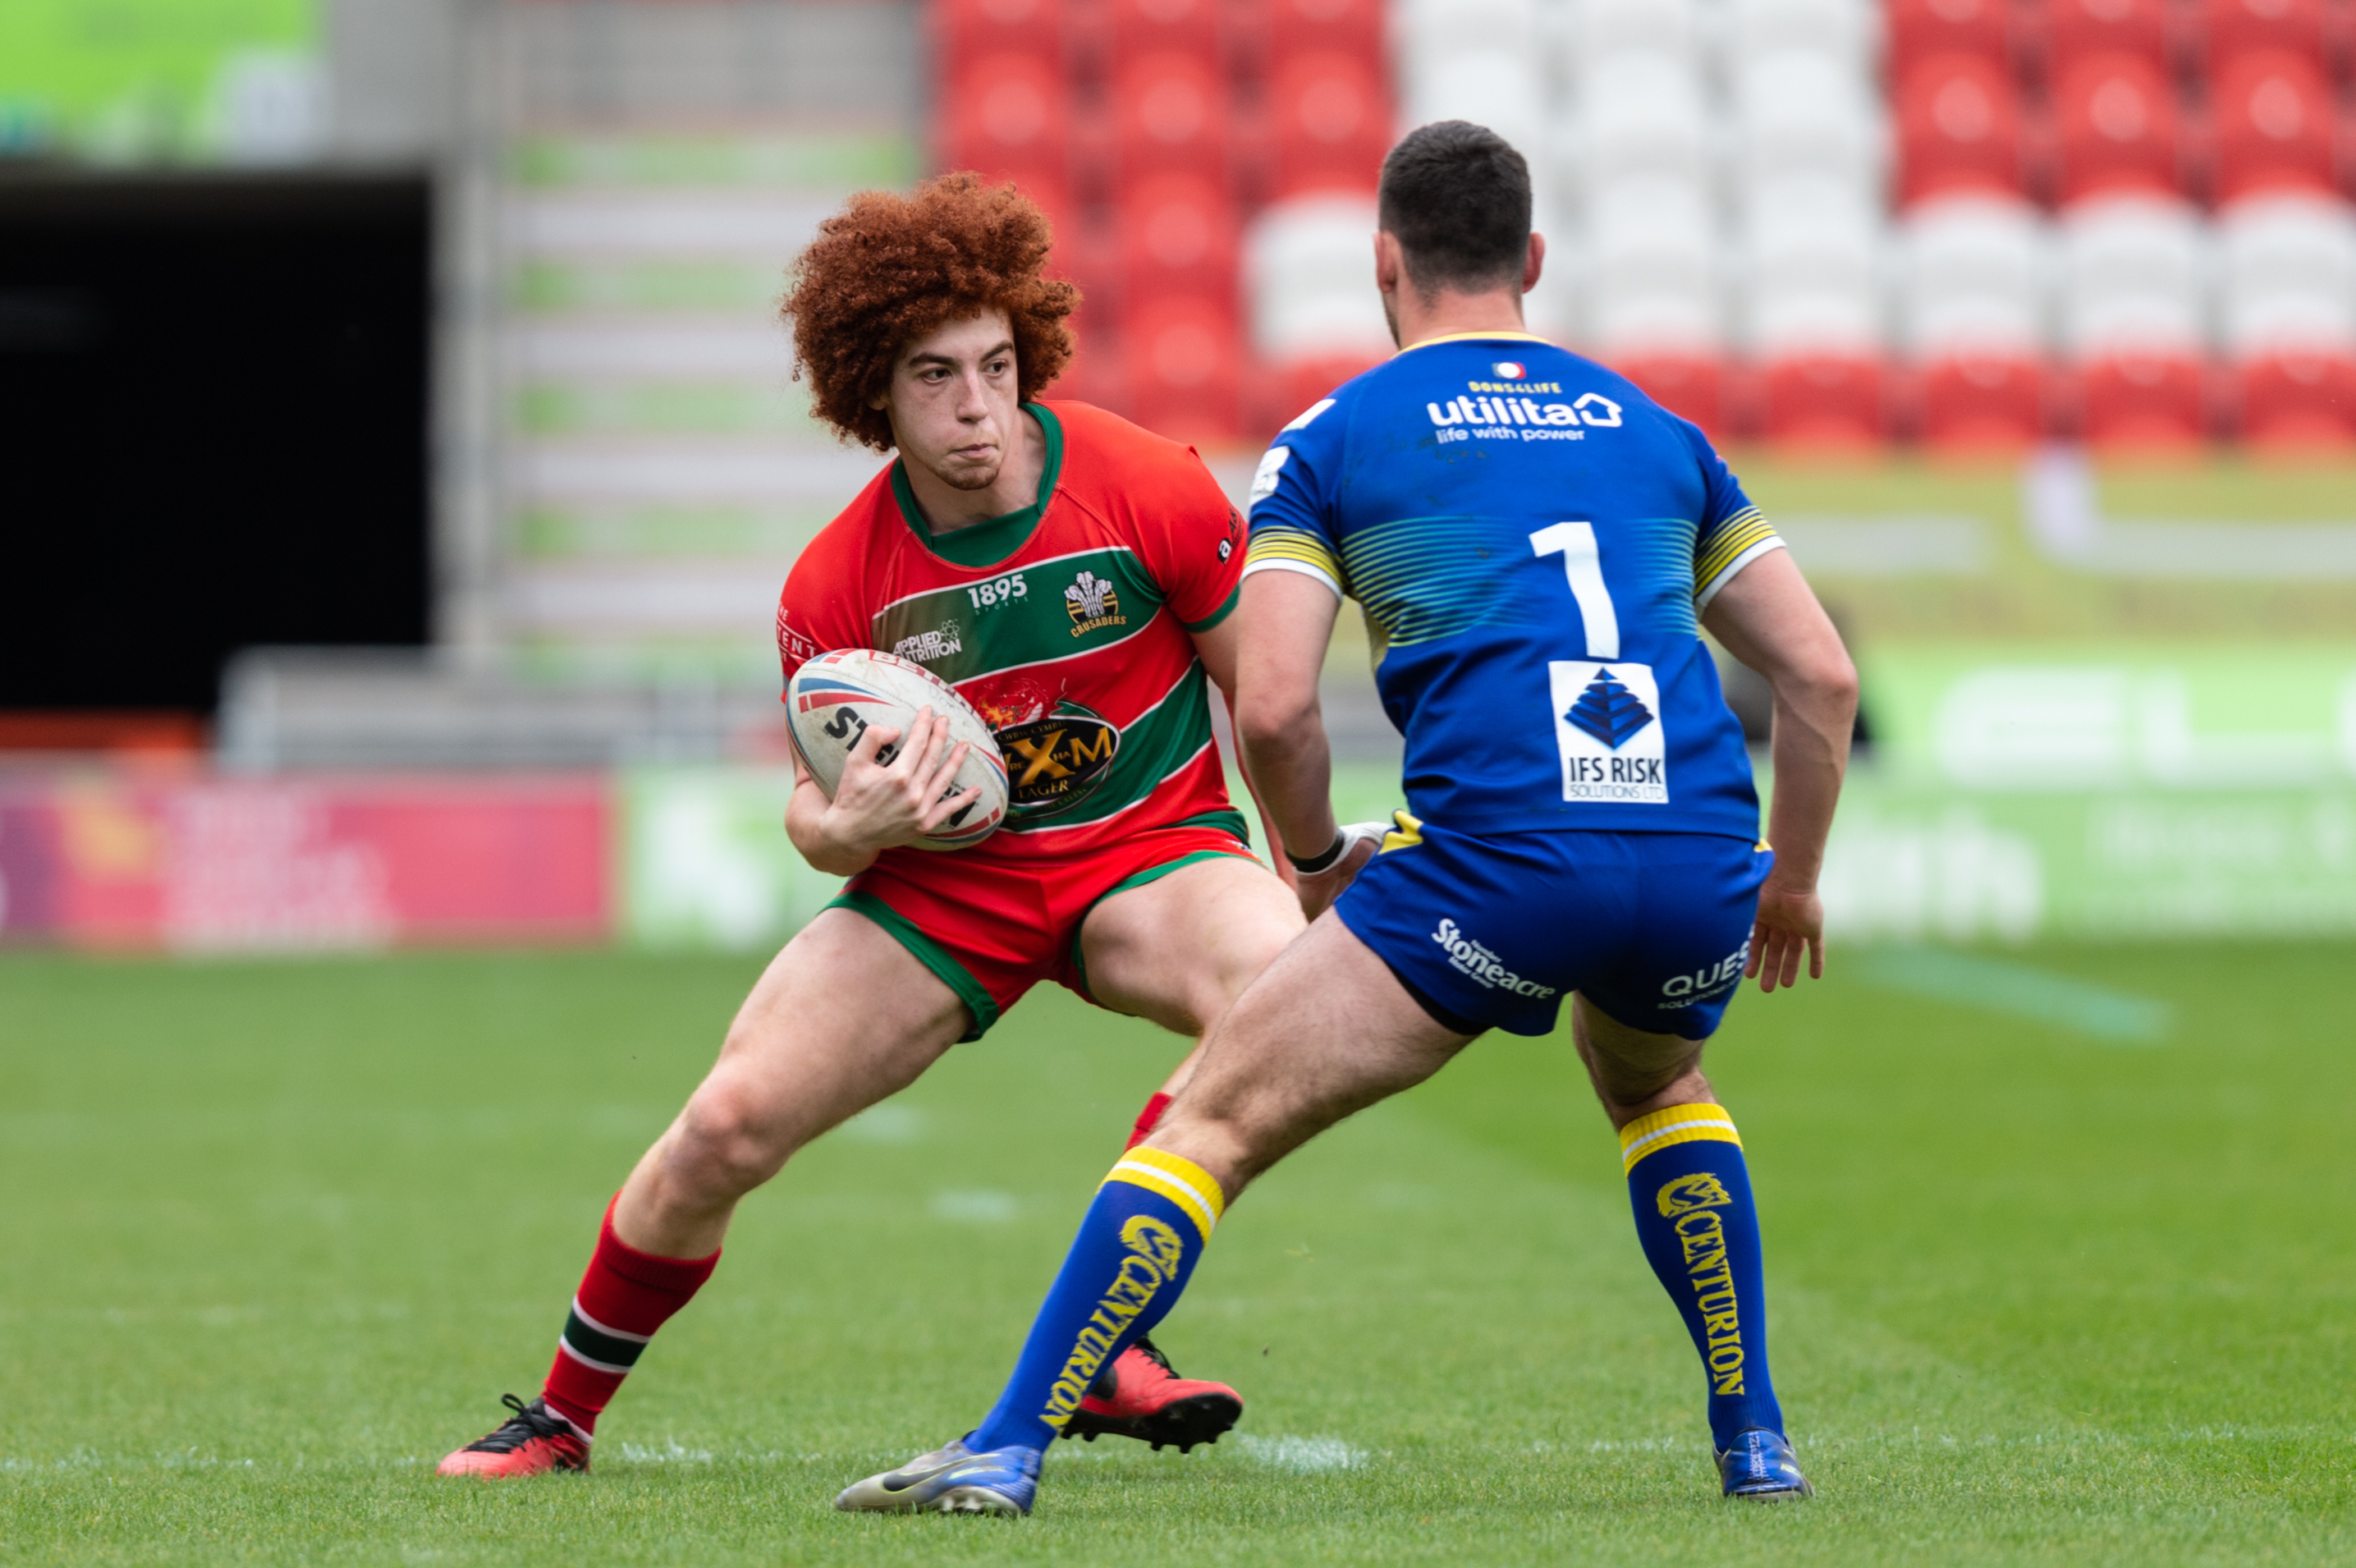 New deal at North Wales Crusaders for Dante Morley-Samuels